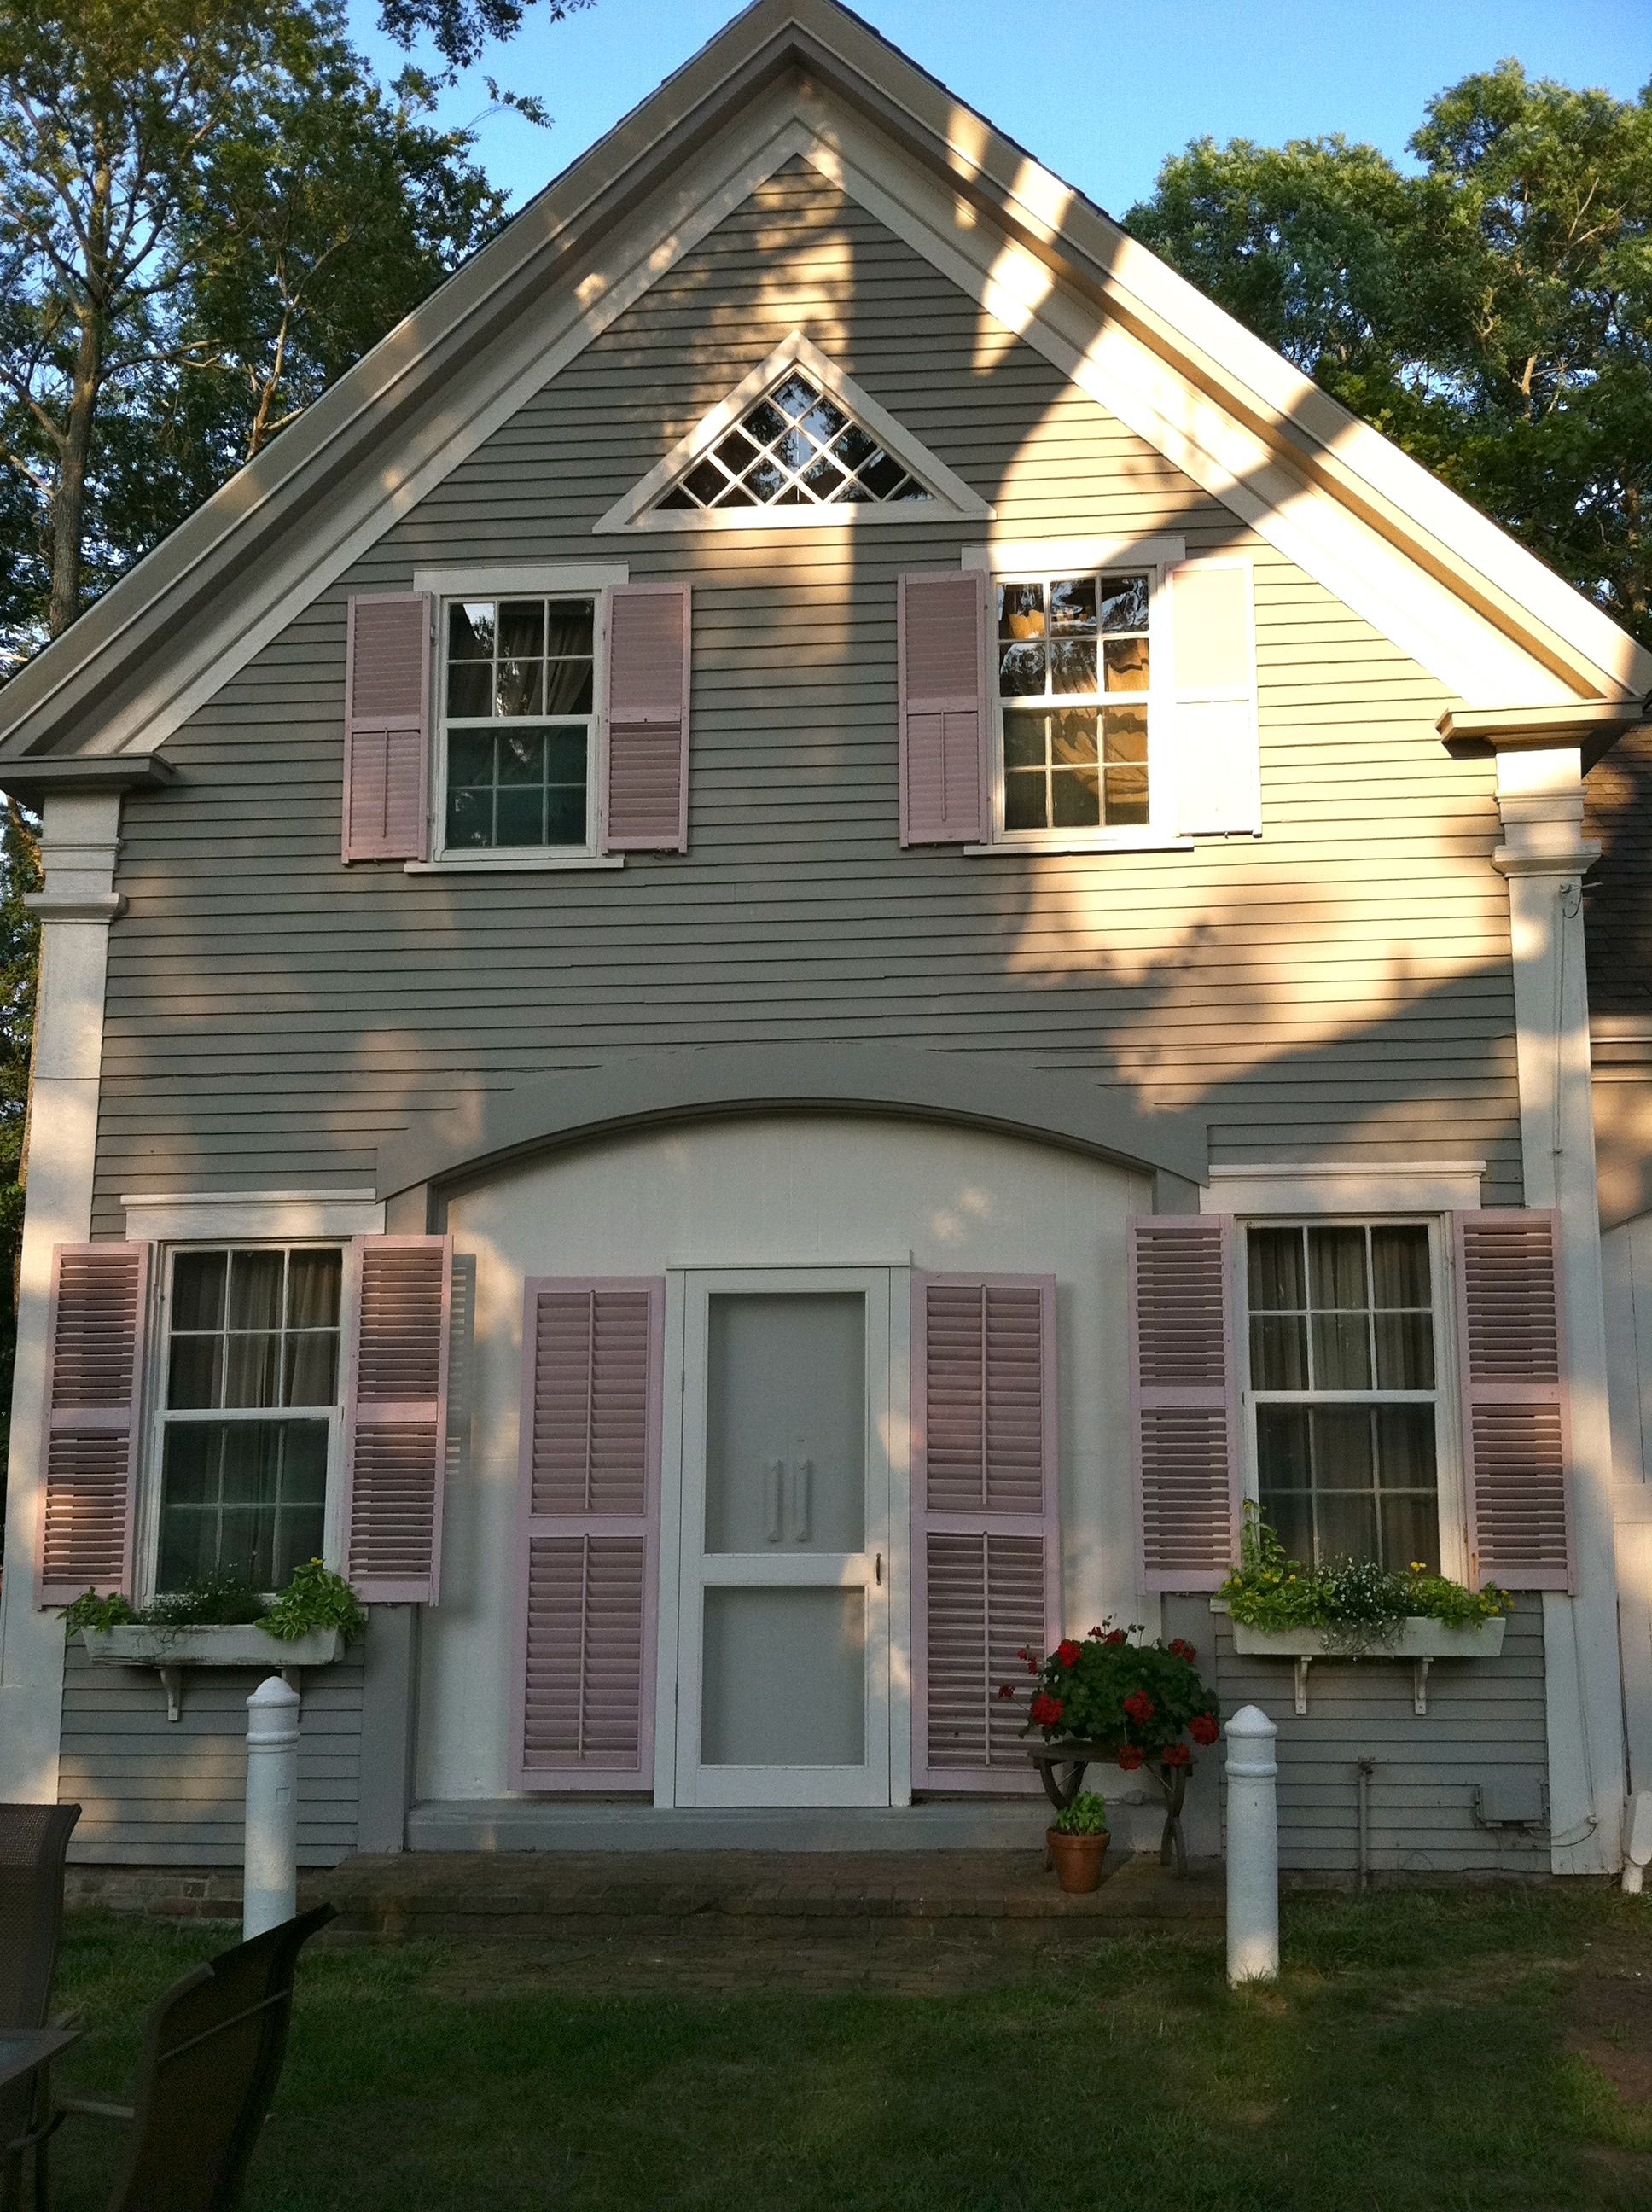 Greek Revival 1800's Cape Cod Carriage House for rent  Newly